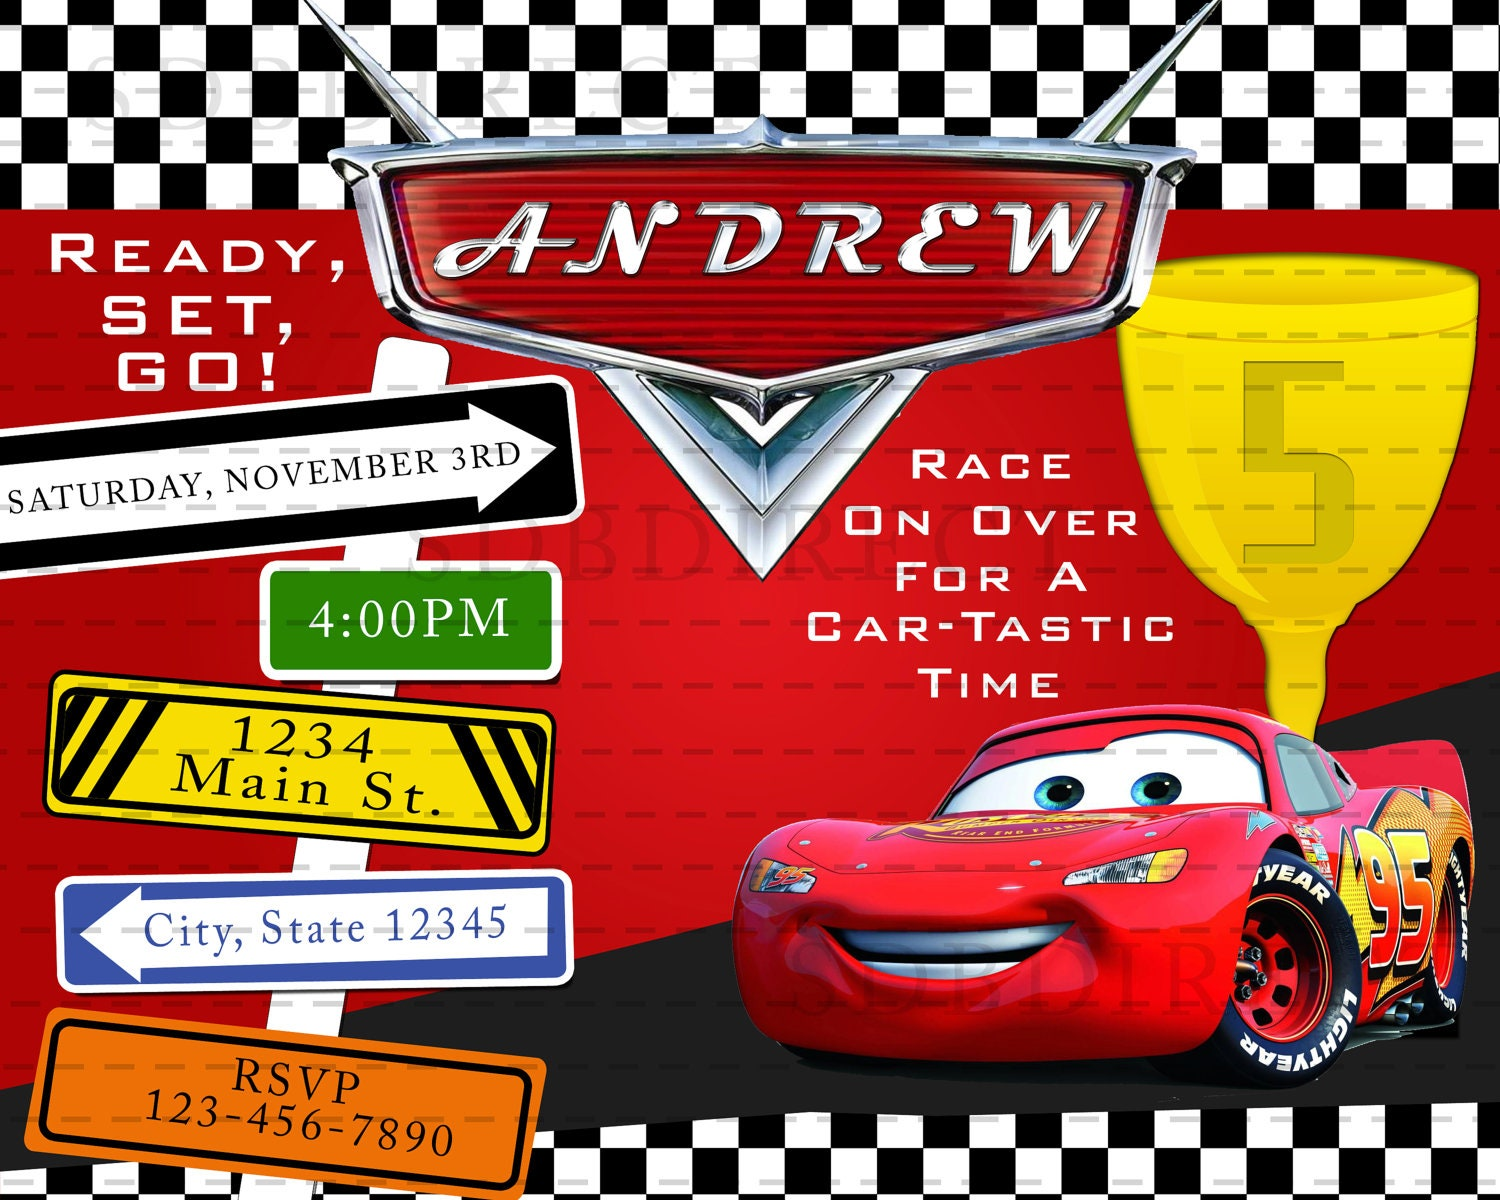 disney cars 1st birthday party invitations disney cars 1st disney cars birthday invitations disney cars birthday party